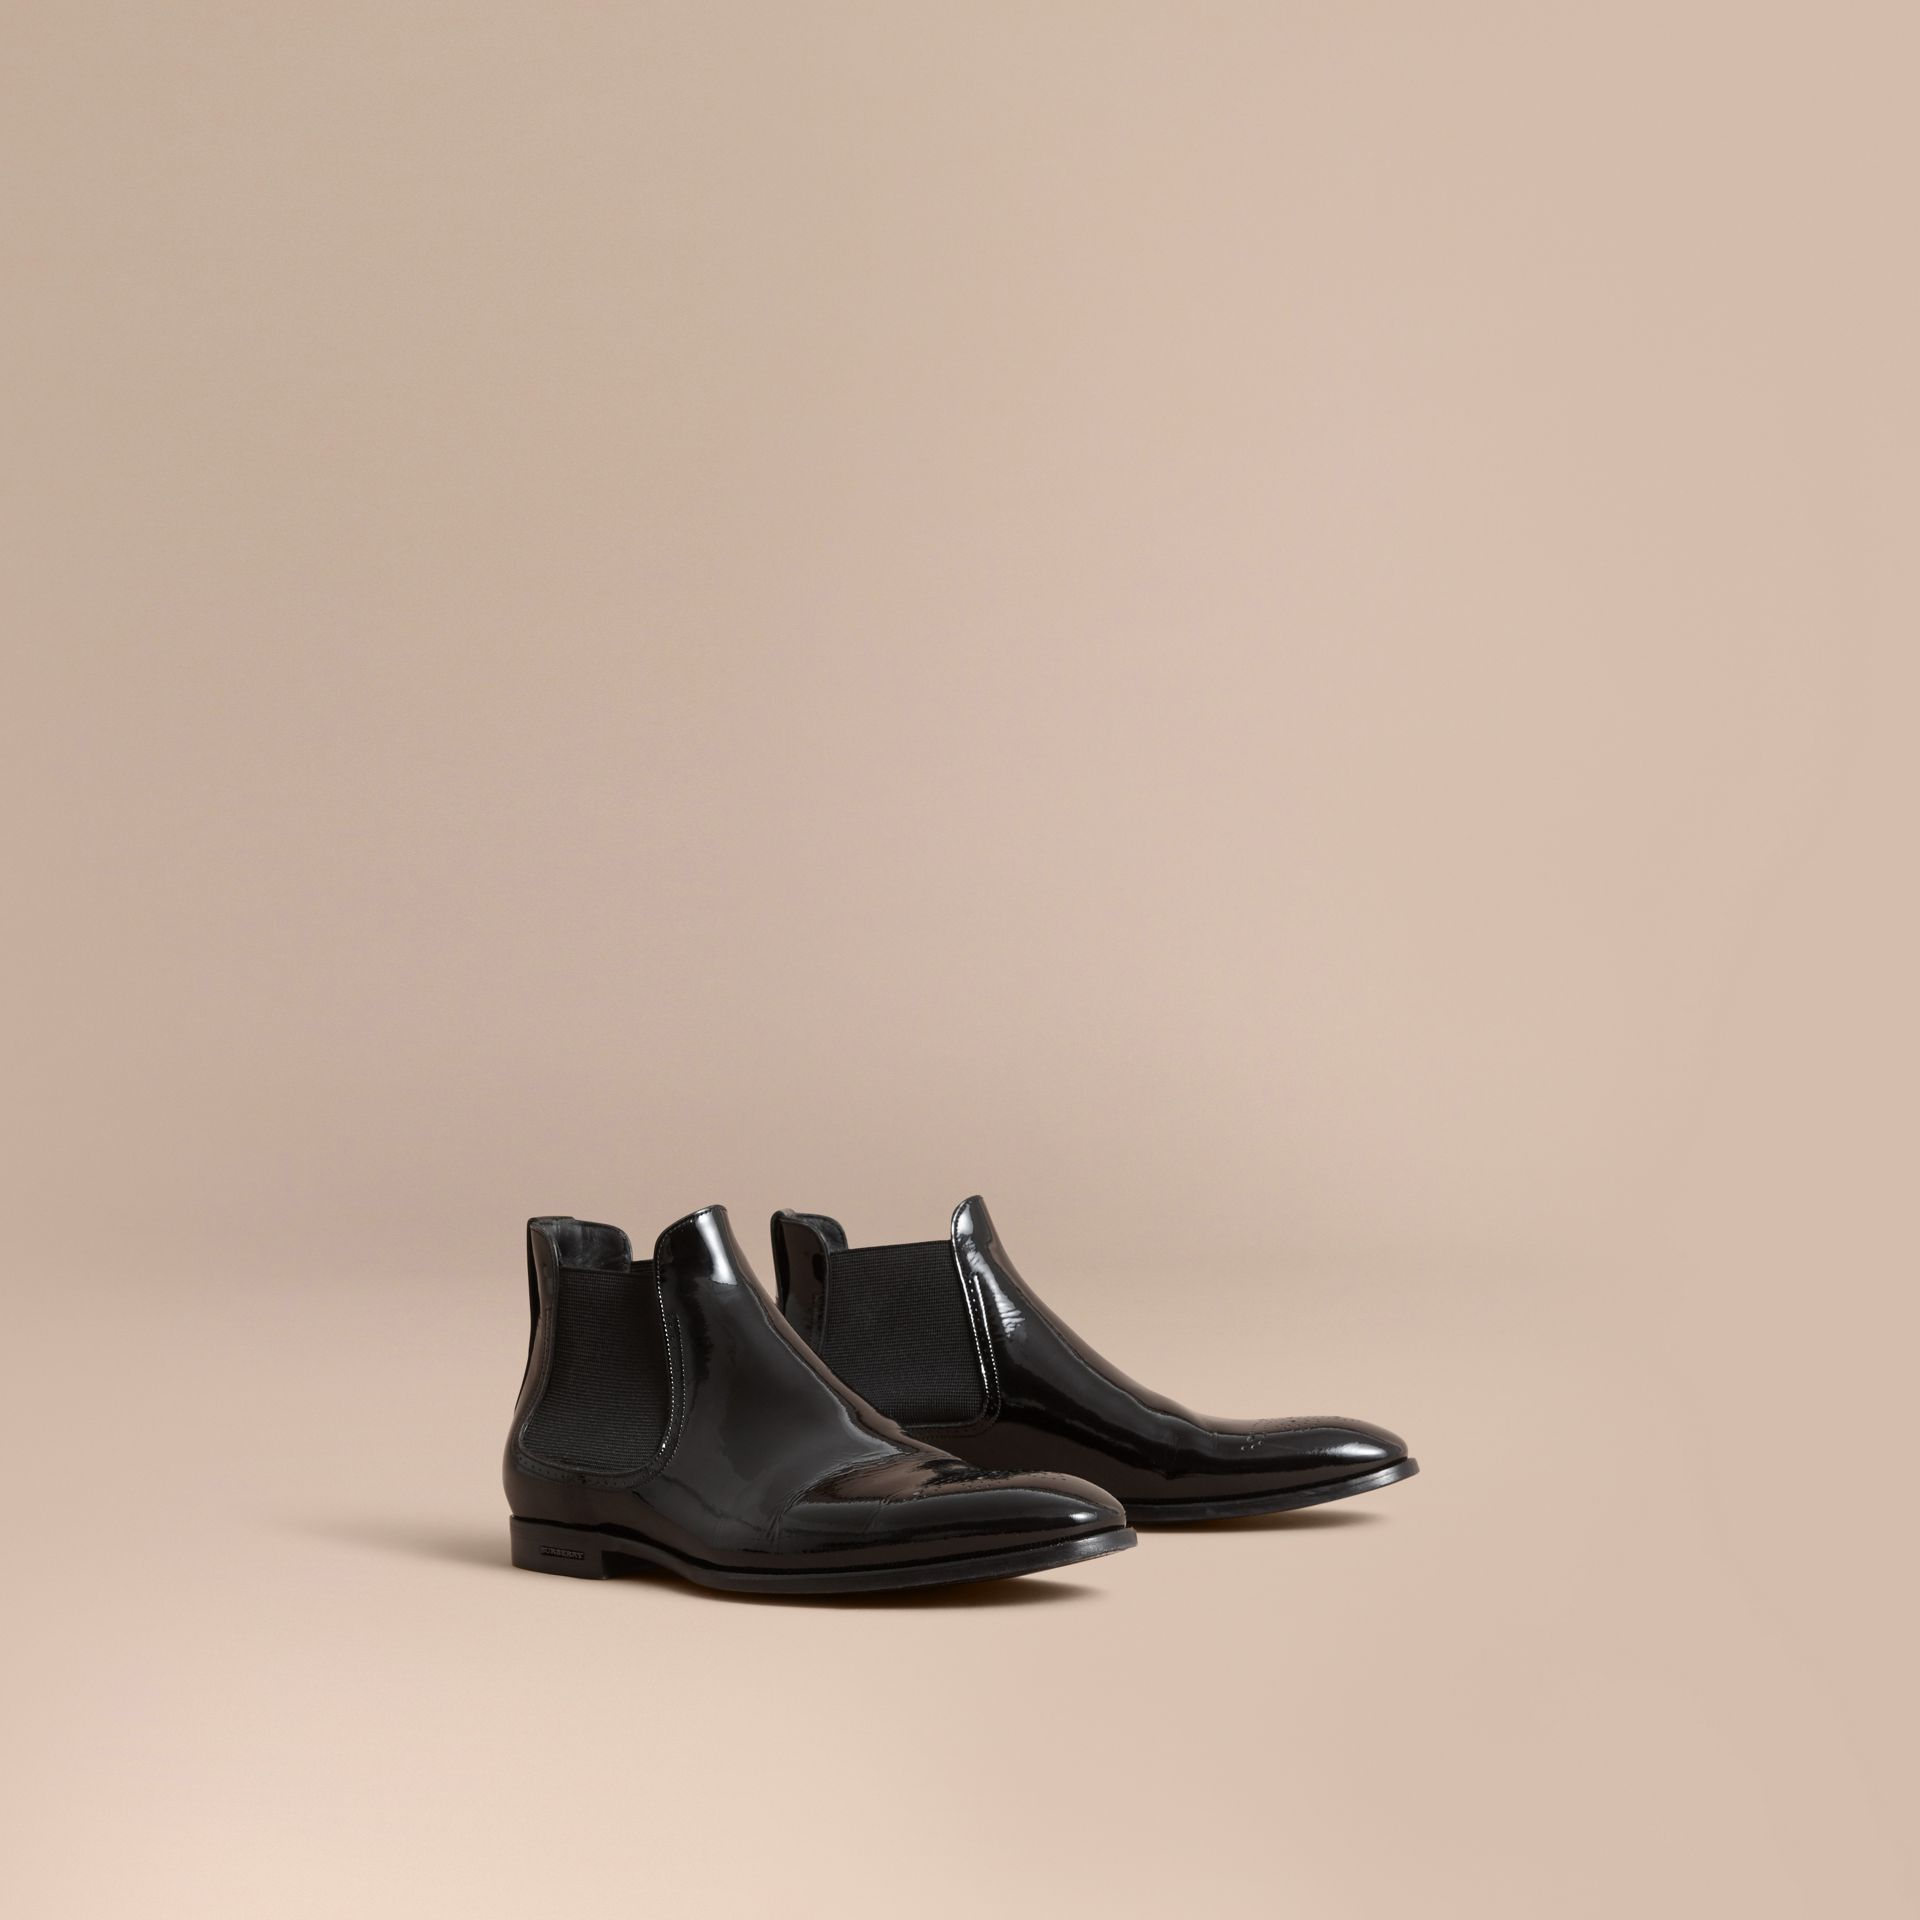 Polished Leather Chelsea Boots in Black - Men | Burberry Hong Kong - gallery image 1